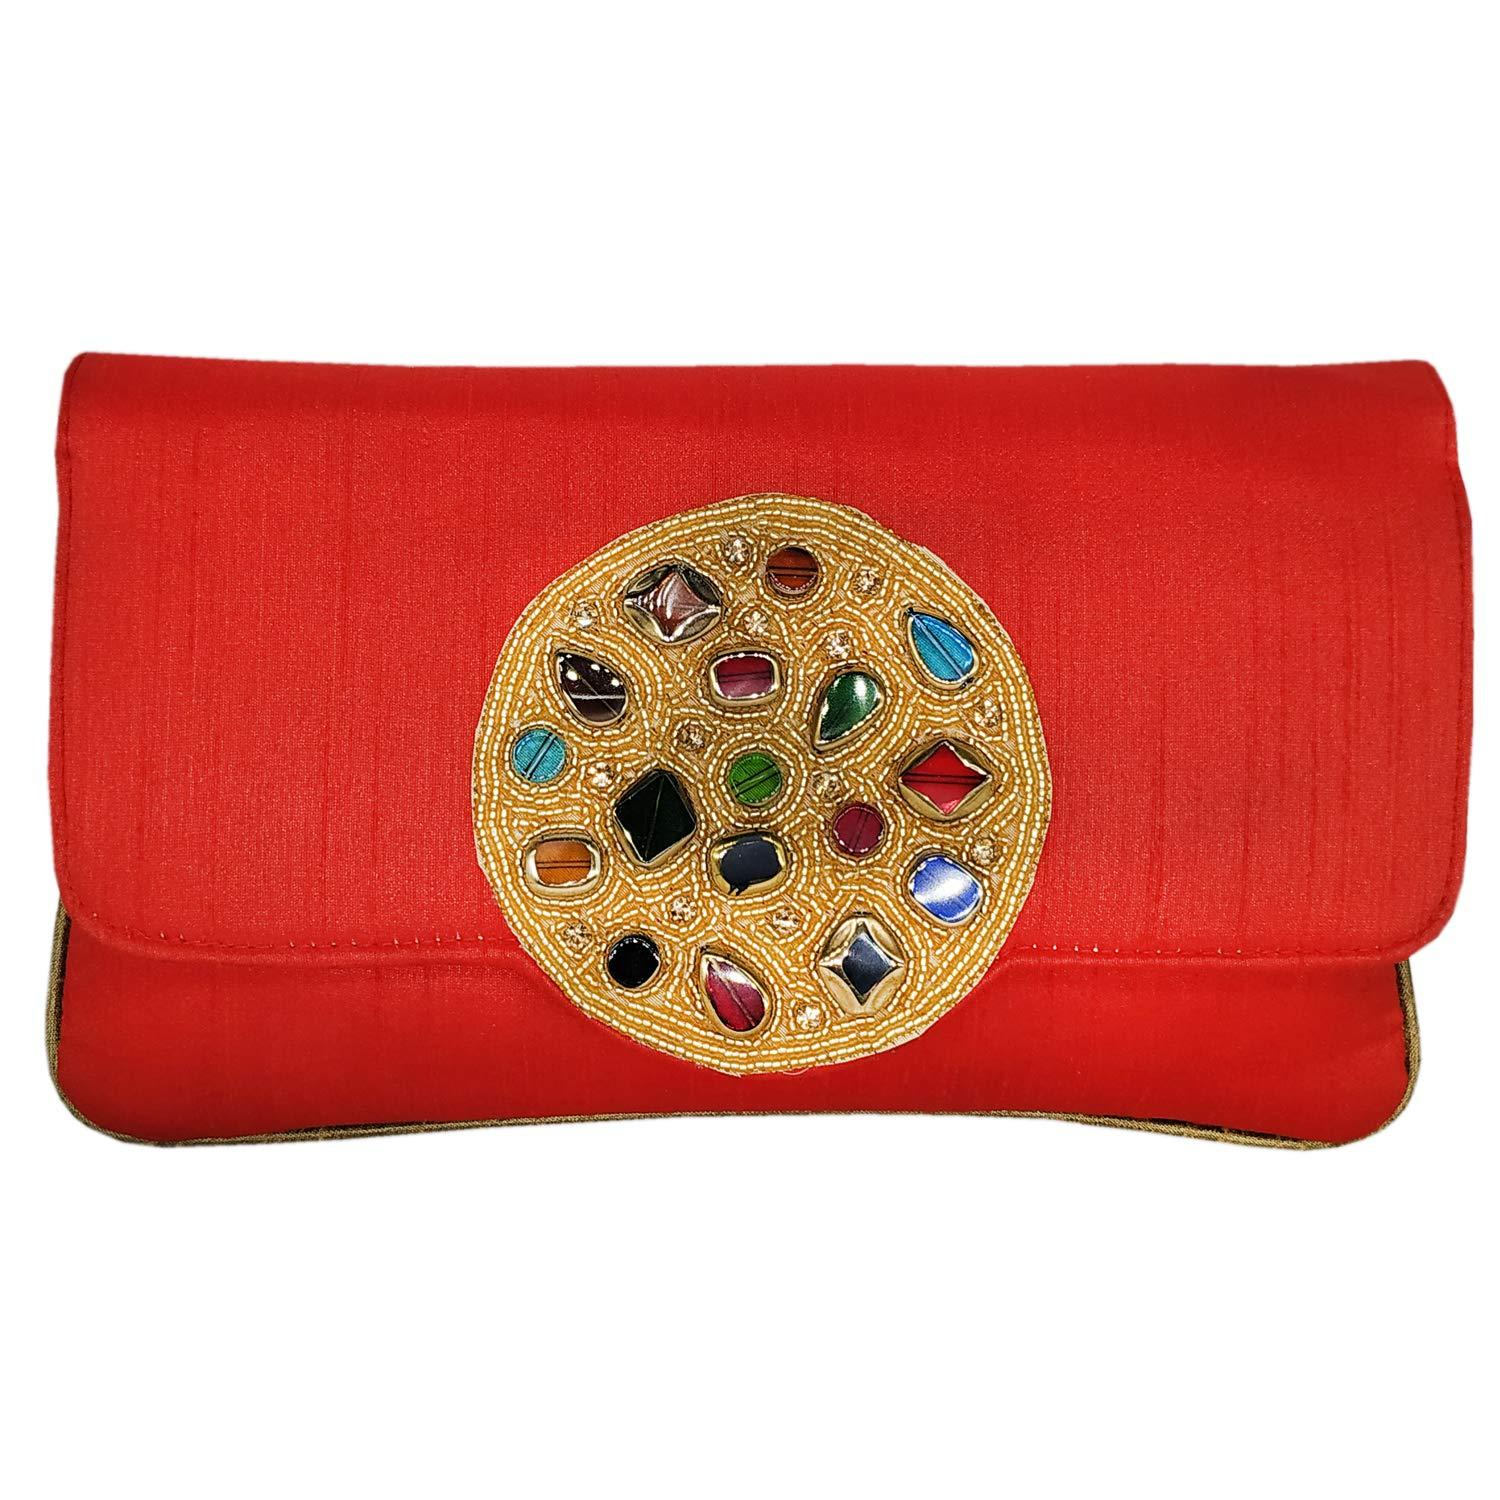 Ethnic Beads Pearls Gemstone and Diamond Studded Wedding Clutches - Bagaholics Gift